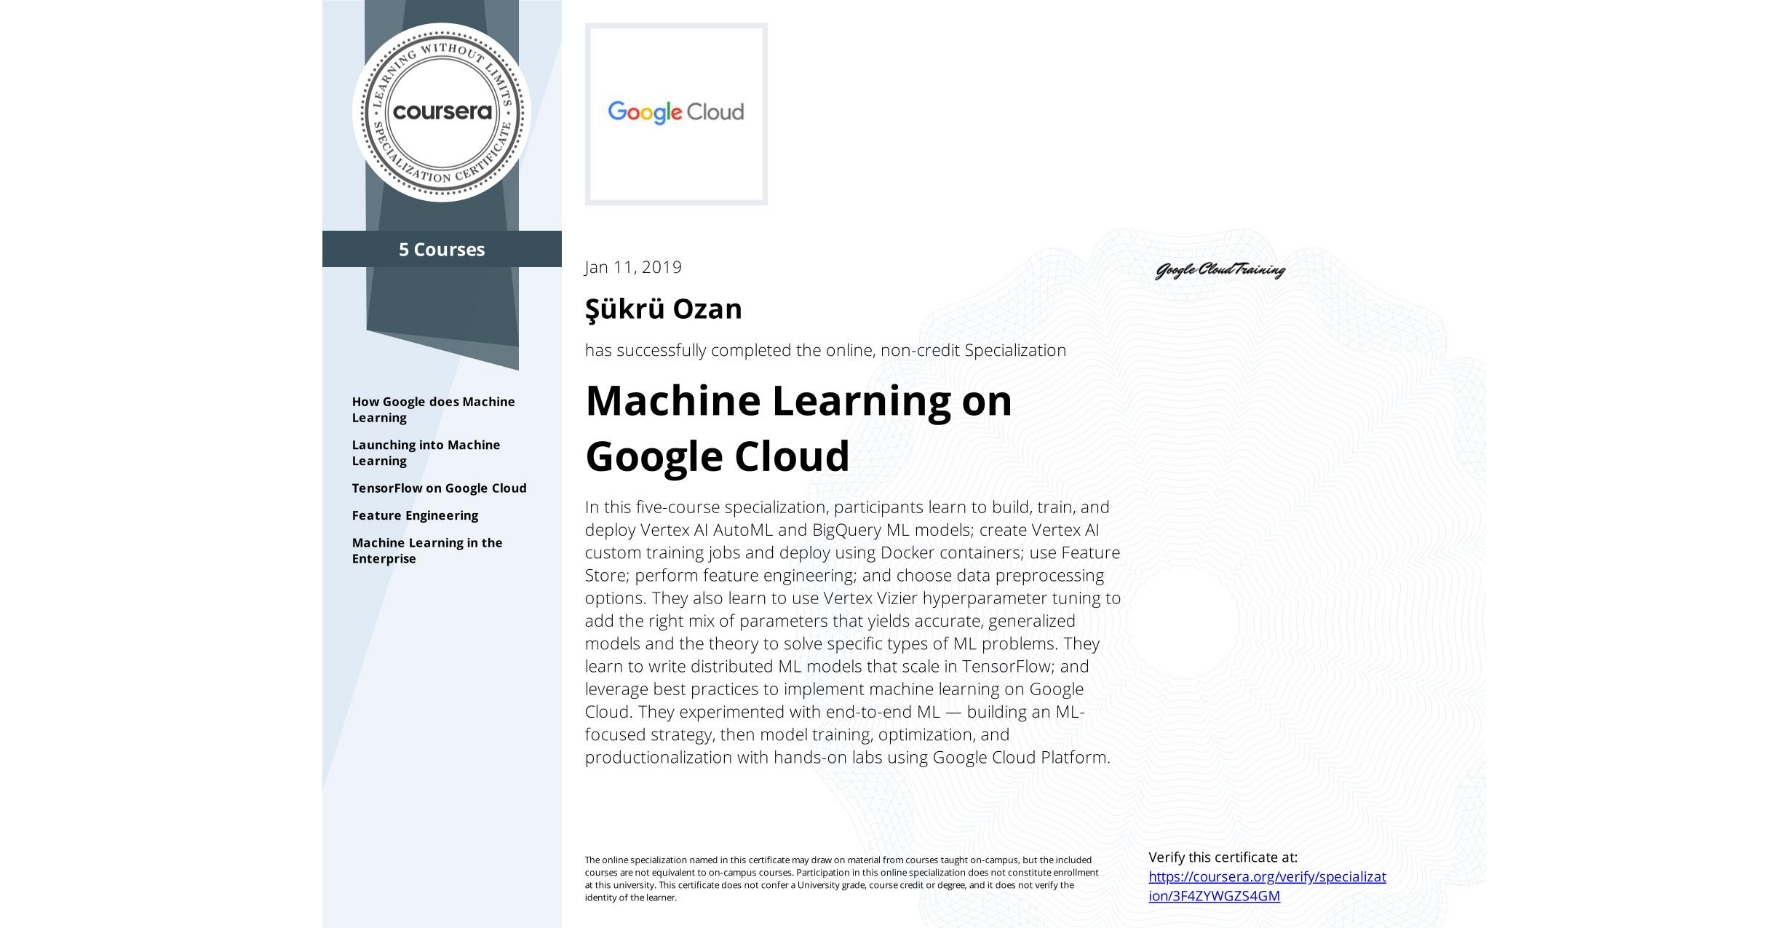 View certificate for Şükrü Ozan, Machine Learning with TensorFlow on Google Cloud Platform, offered through Coursera. This five-course online specialization teaches course participants how to write distributed machine learning models that scale in Tensorflow, scale out the training of those models. and offer high-performance predictions. Also featured is the conversion of raw data to features in a way that allows ML to learn important characteristics from the data and bring human insight to bear on the problem. It also teaches how to incorporate the right mix of parameters that yields accurate, generalized models and knowledge of the theory to solve specific types of ML problems. Course participants experimented with end-to-end ML, starting from building an ML-focused strategy and progressing into model training, optimization, and productionalization with hands-on labs using Google Cloud Platform.